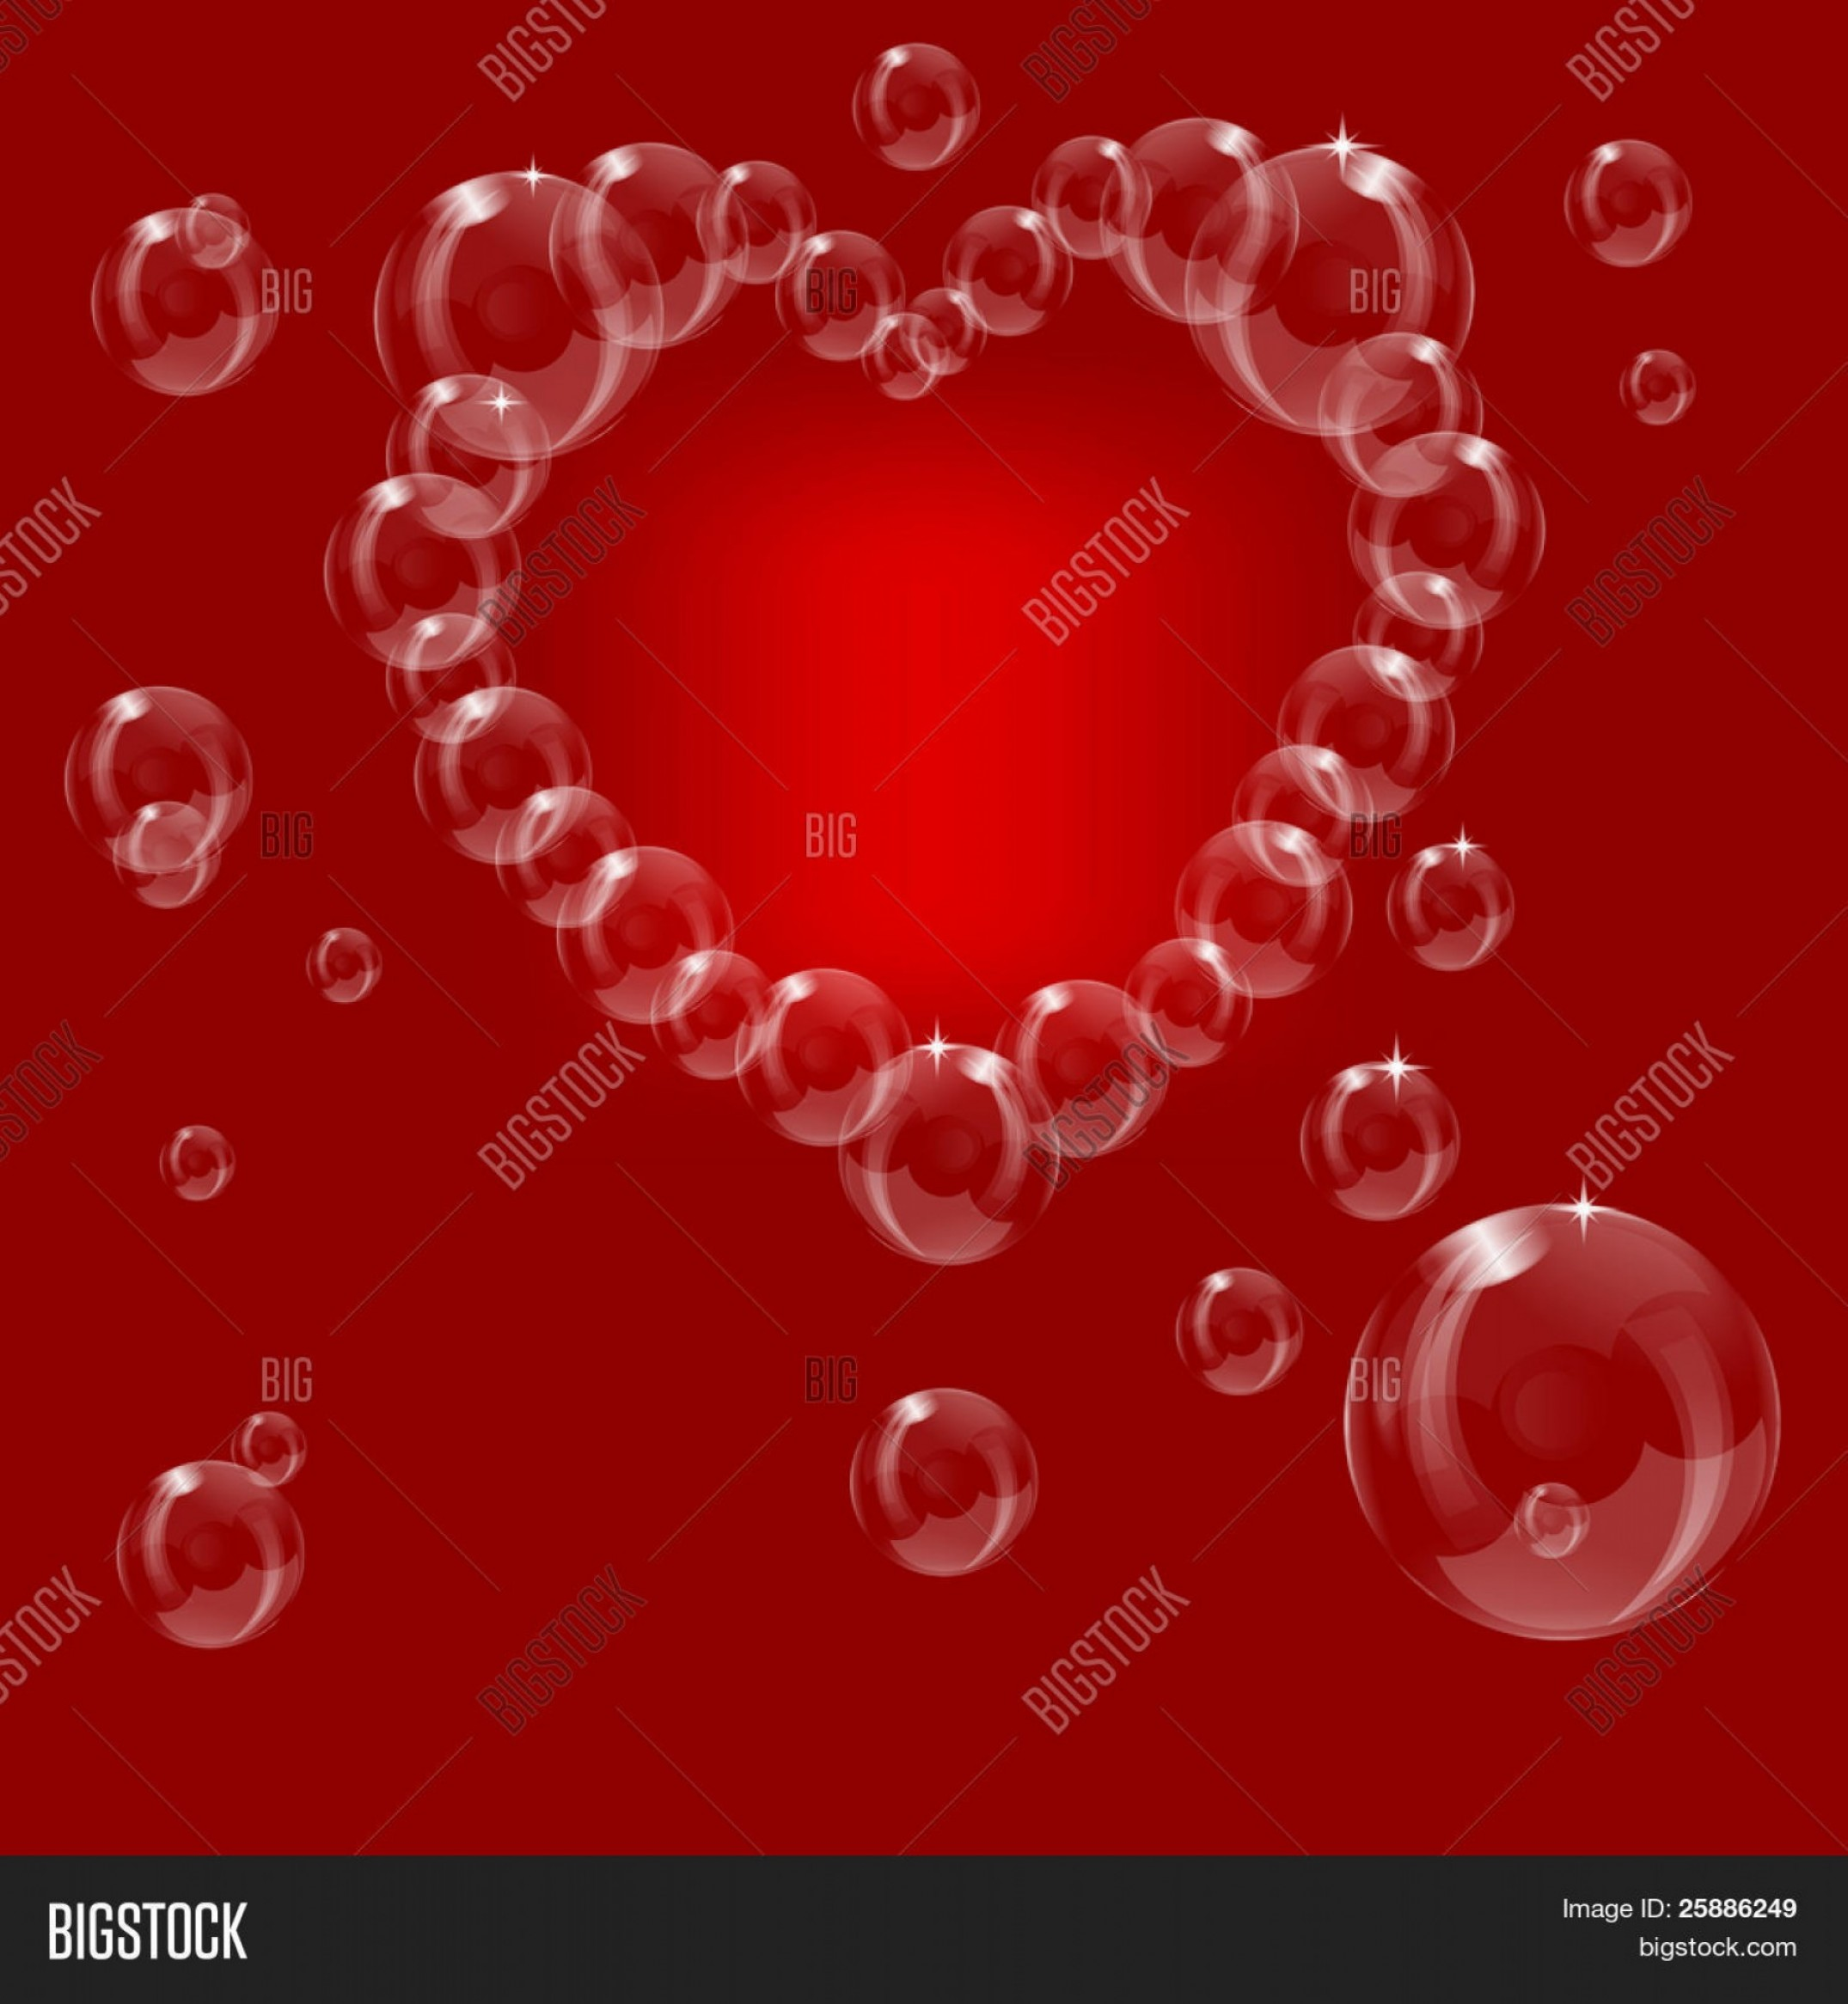 EPS Vector Soap Bubbles: Stock Vector A Heart Made From Soap Bubbles On A Red Background Can Be Used For Love Or Valentines Day Saved In Eps Format